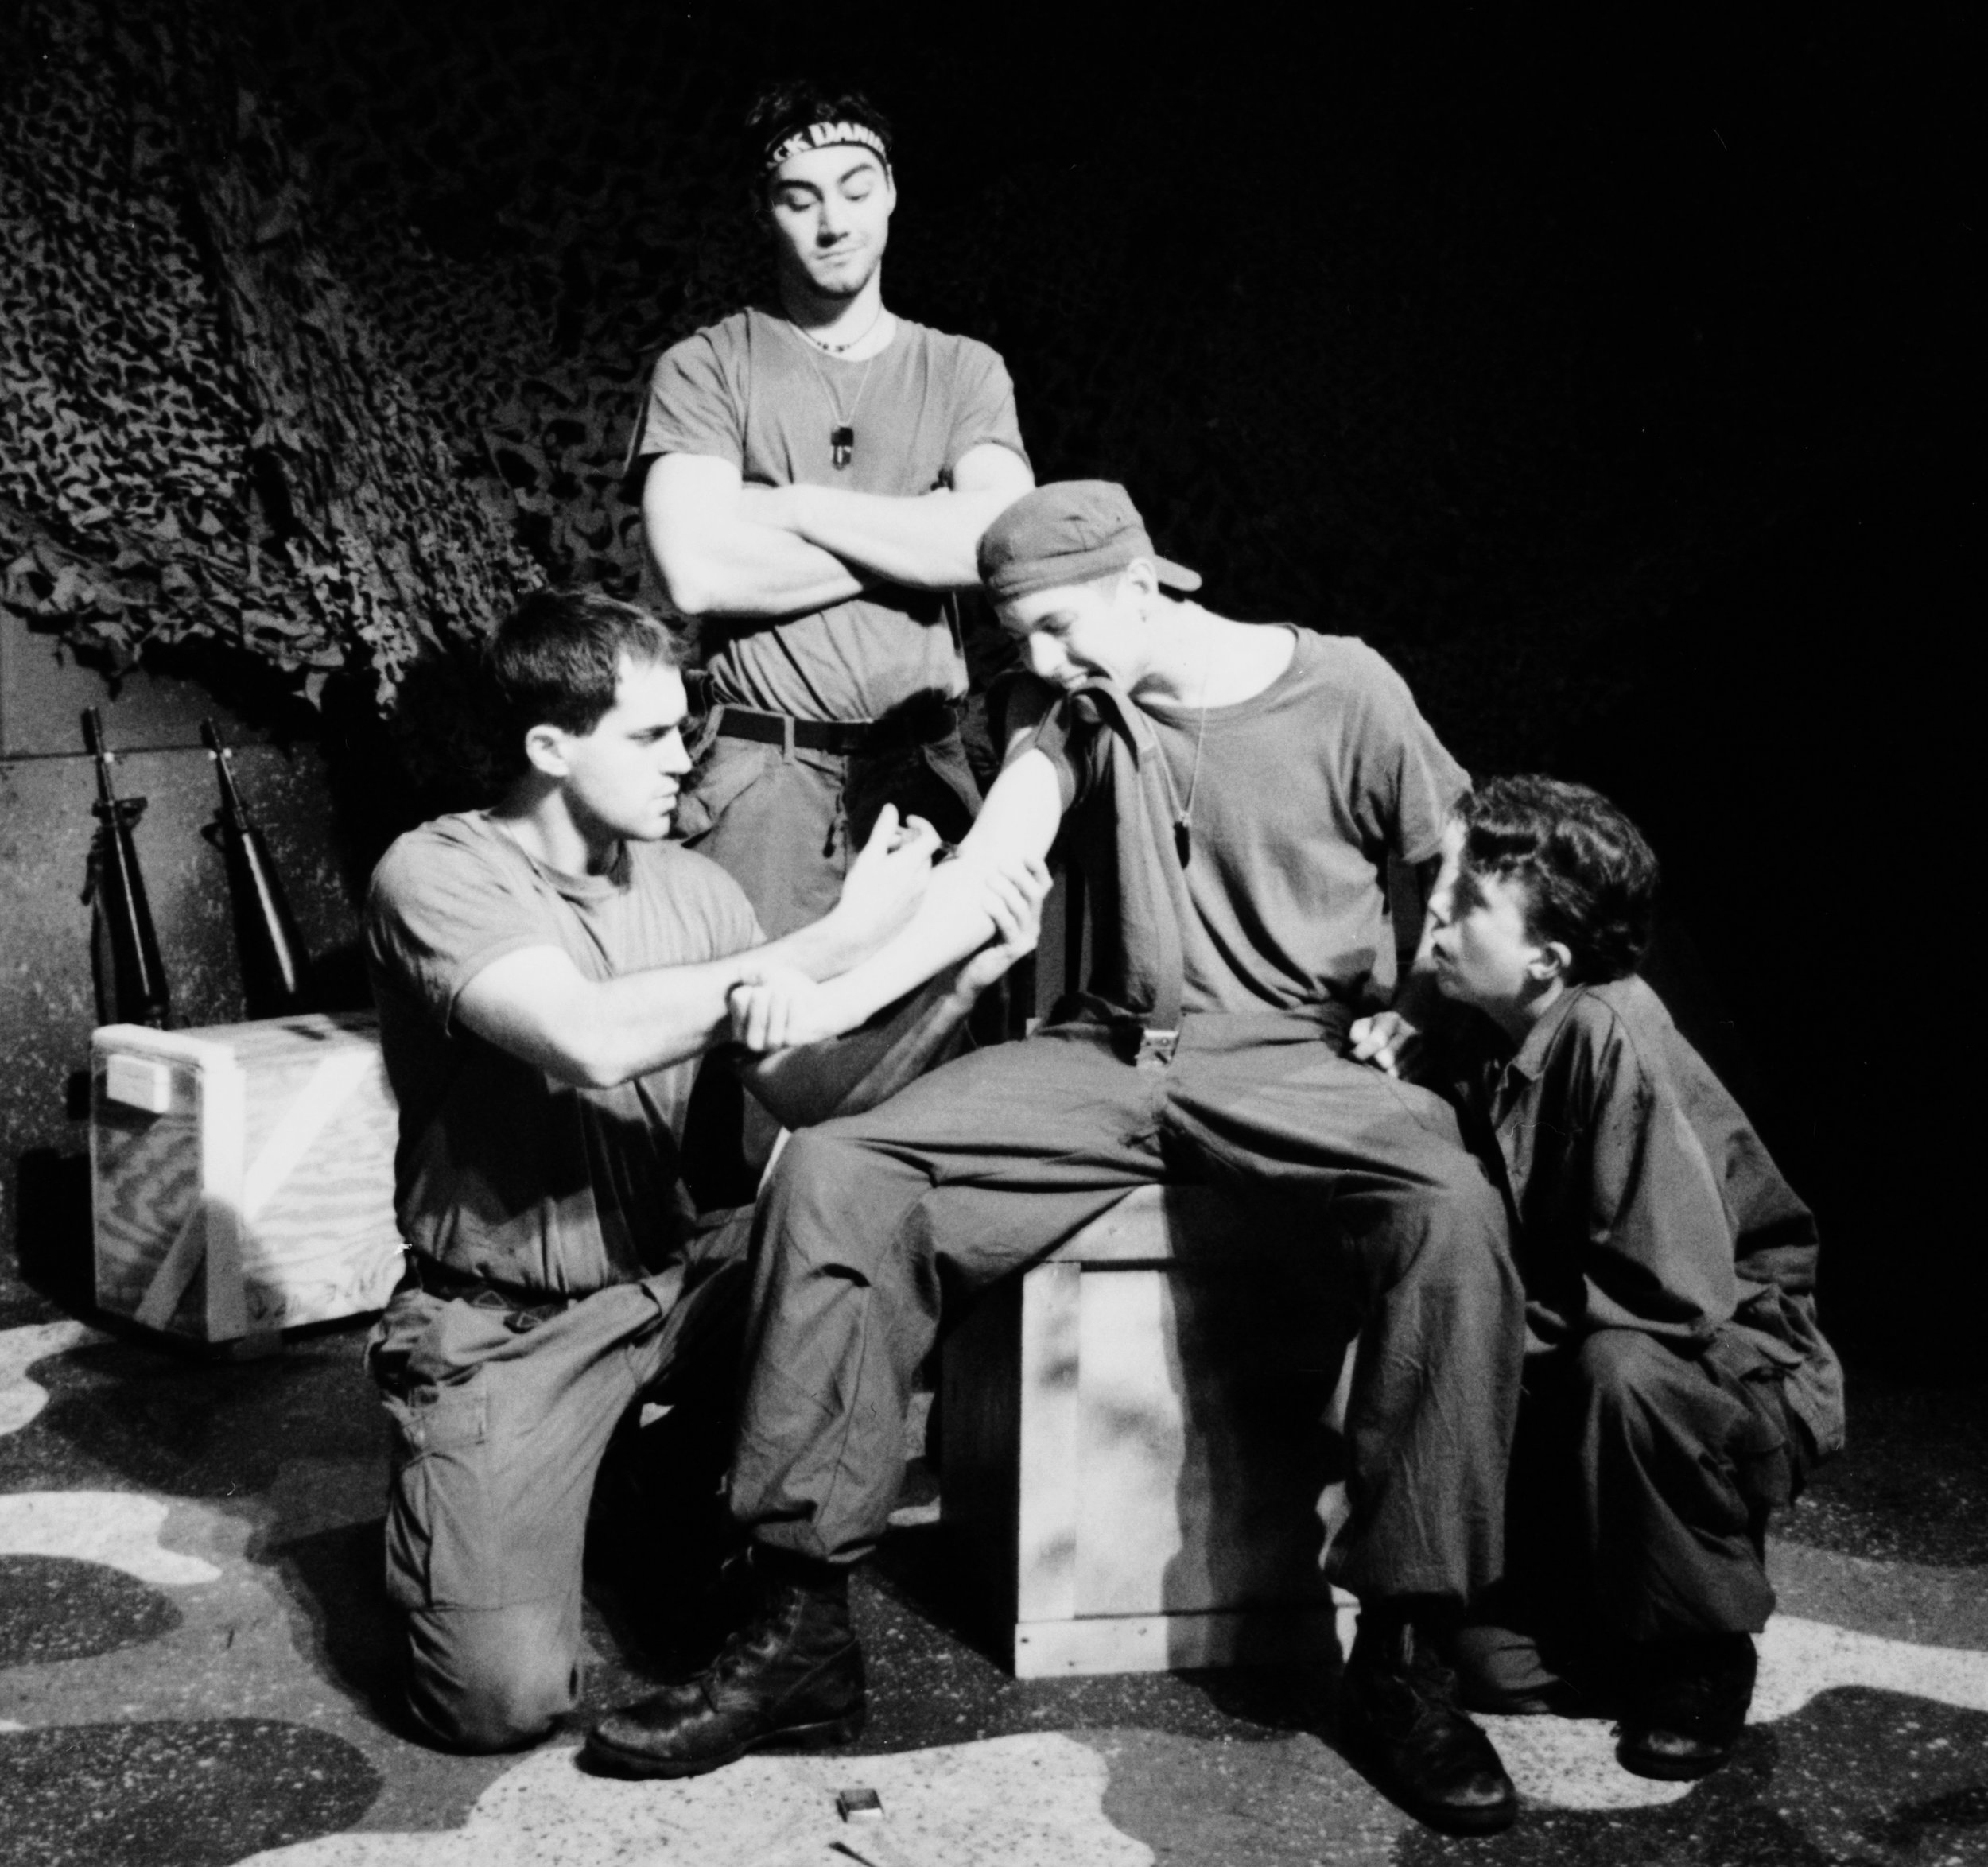 Scott Donnelly (Little John), Chris Solari (Scooter), William Vogt (Dink Dau), and Scott Freeburg in Draw the Sneck Productions'1996 | 1997 productions of  Tracers , directed by John Drouillard.  Photo by Paul Backer.